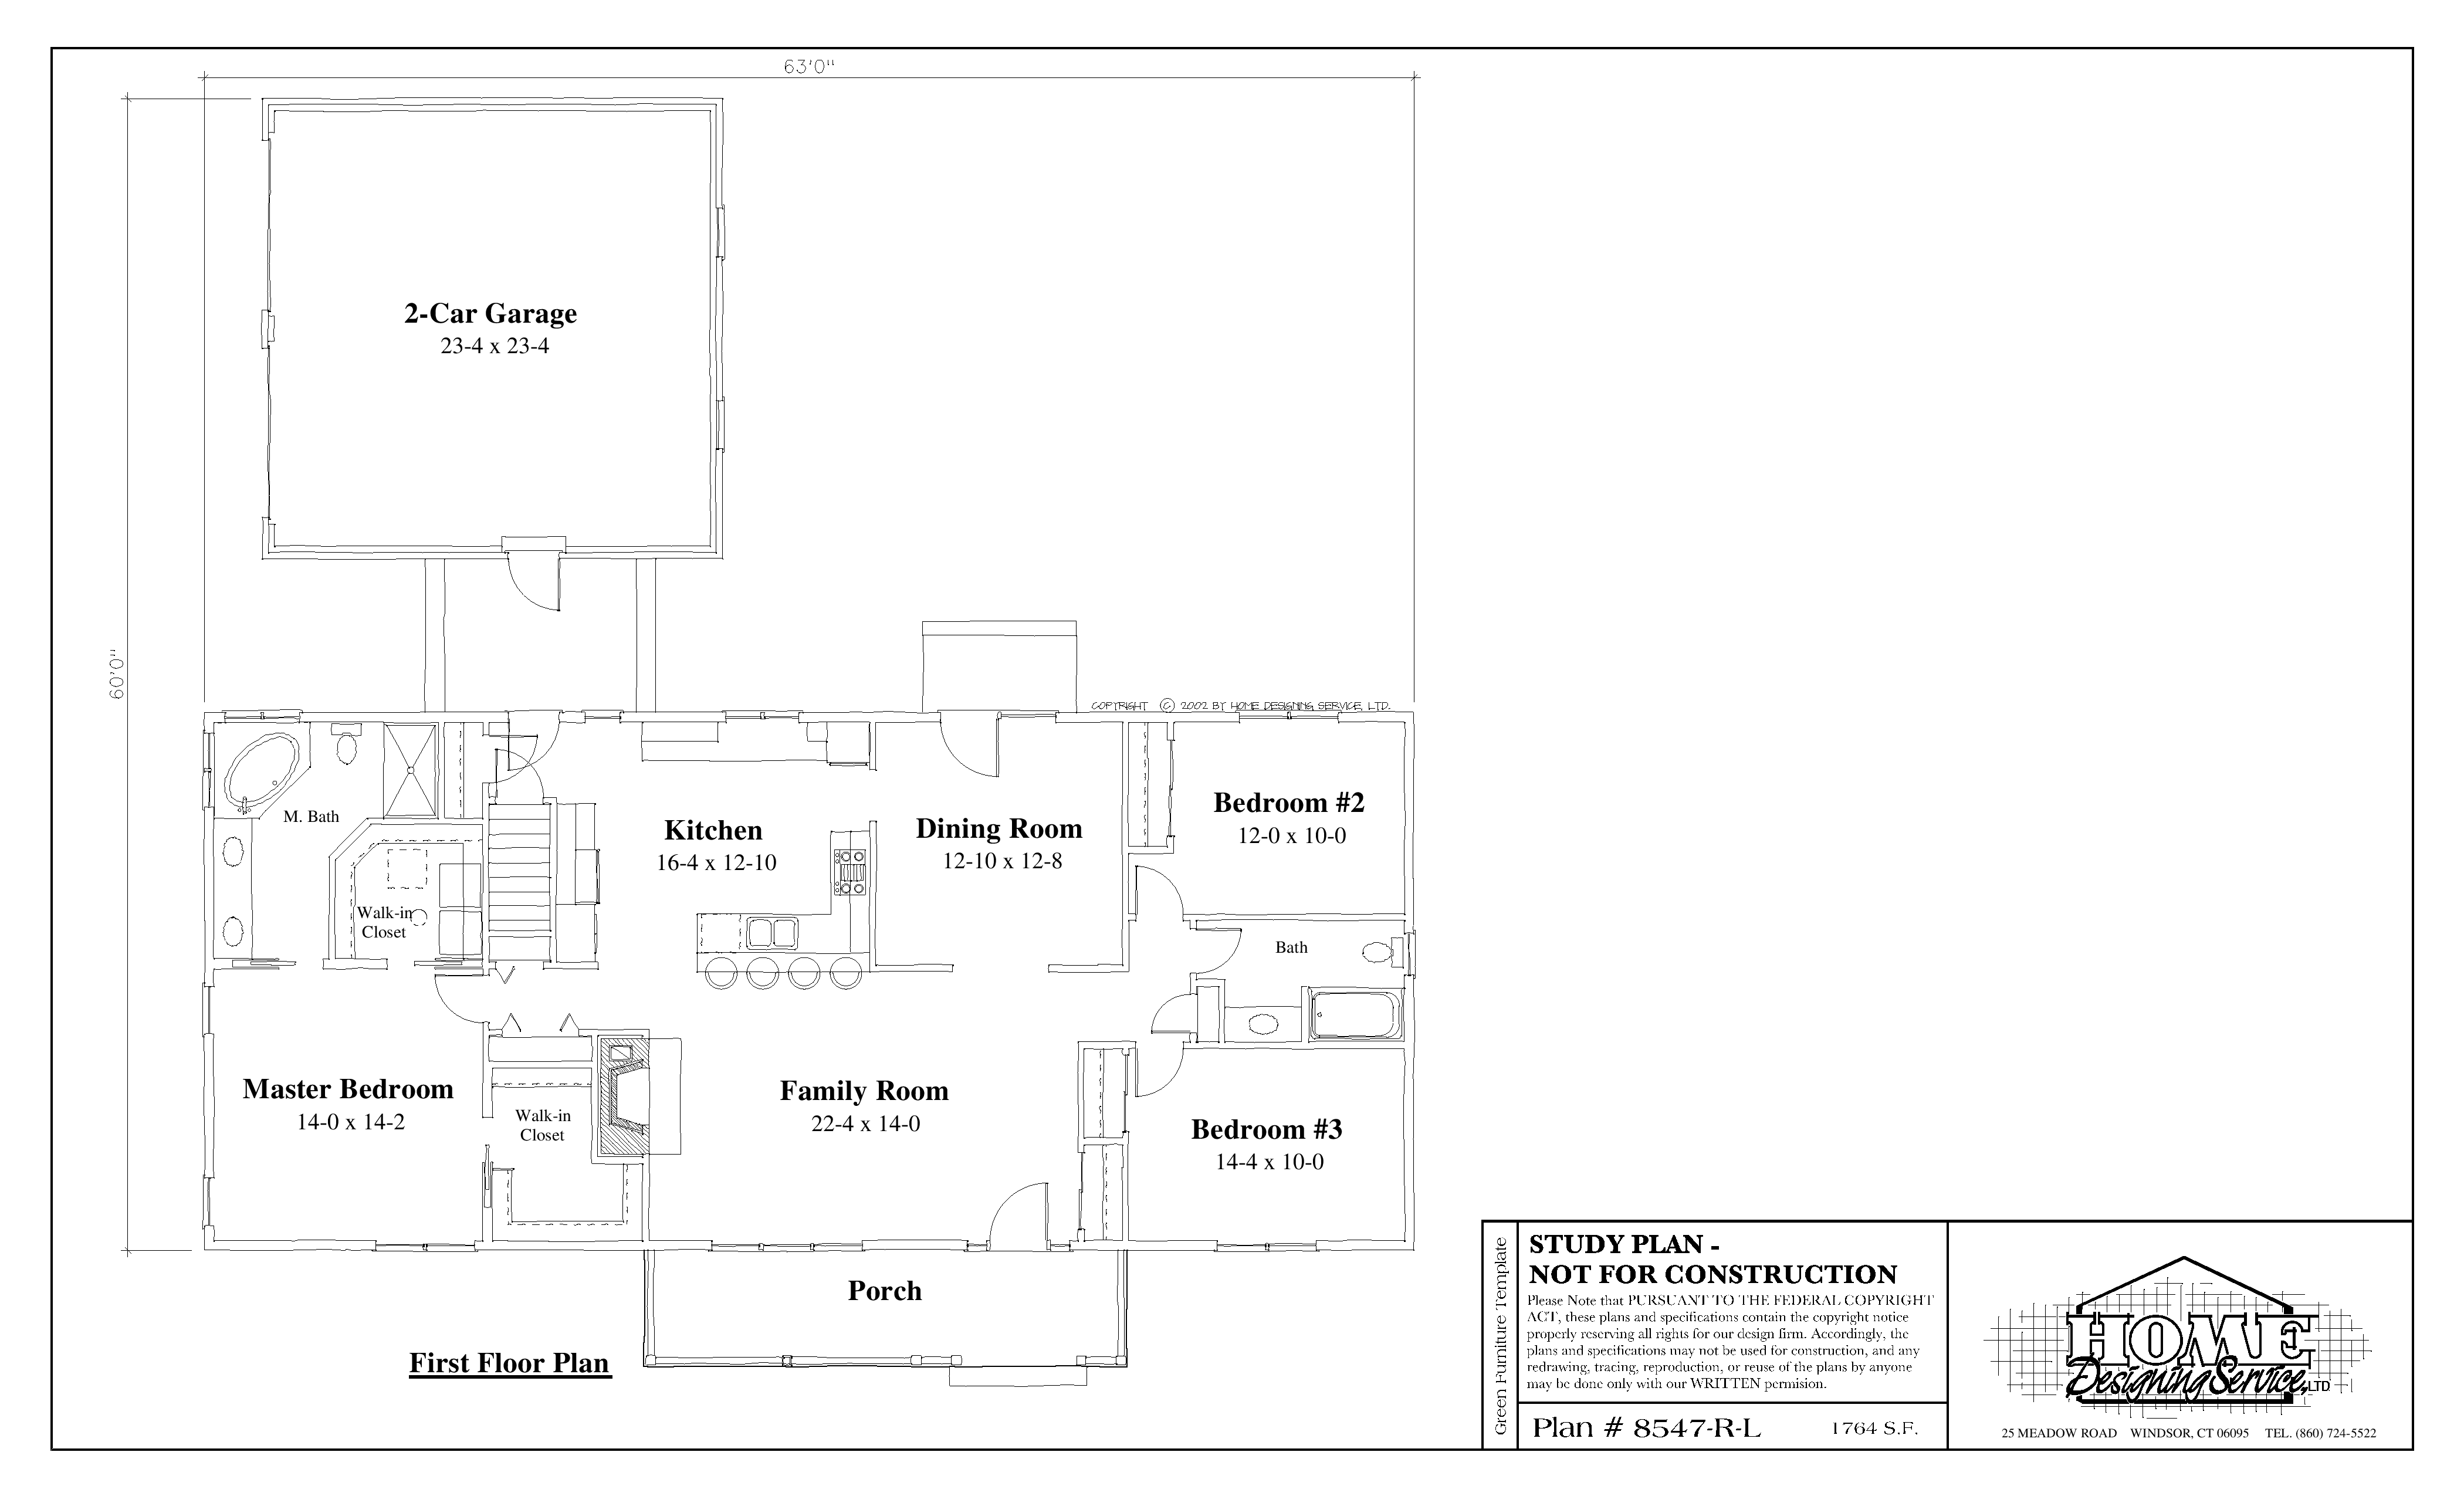 Ranch House Plan 8547-R-L - Home Designing Service Ltd. on 3-bedroom ranch homes, 3-bedroom ranch style house plans, house plans with 5 bedrooms and 3 bathrooms,